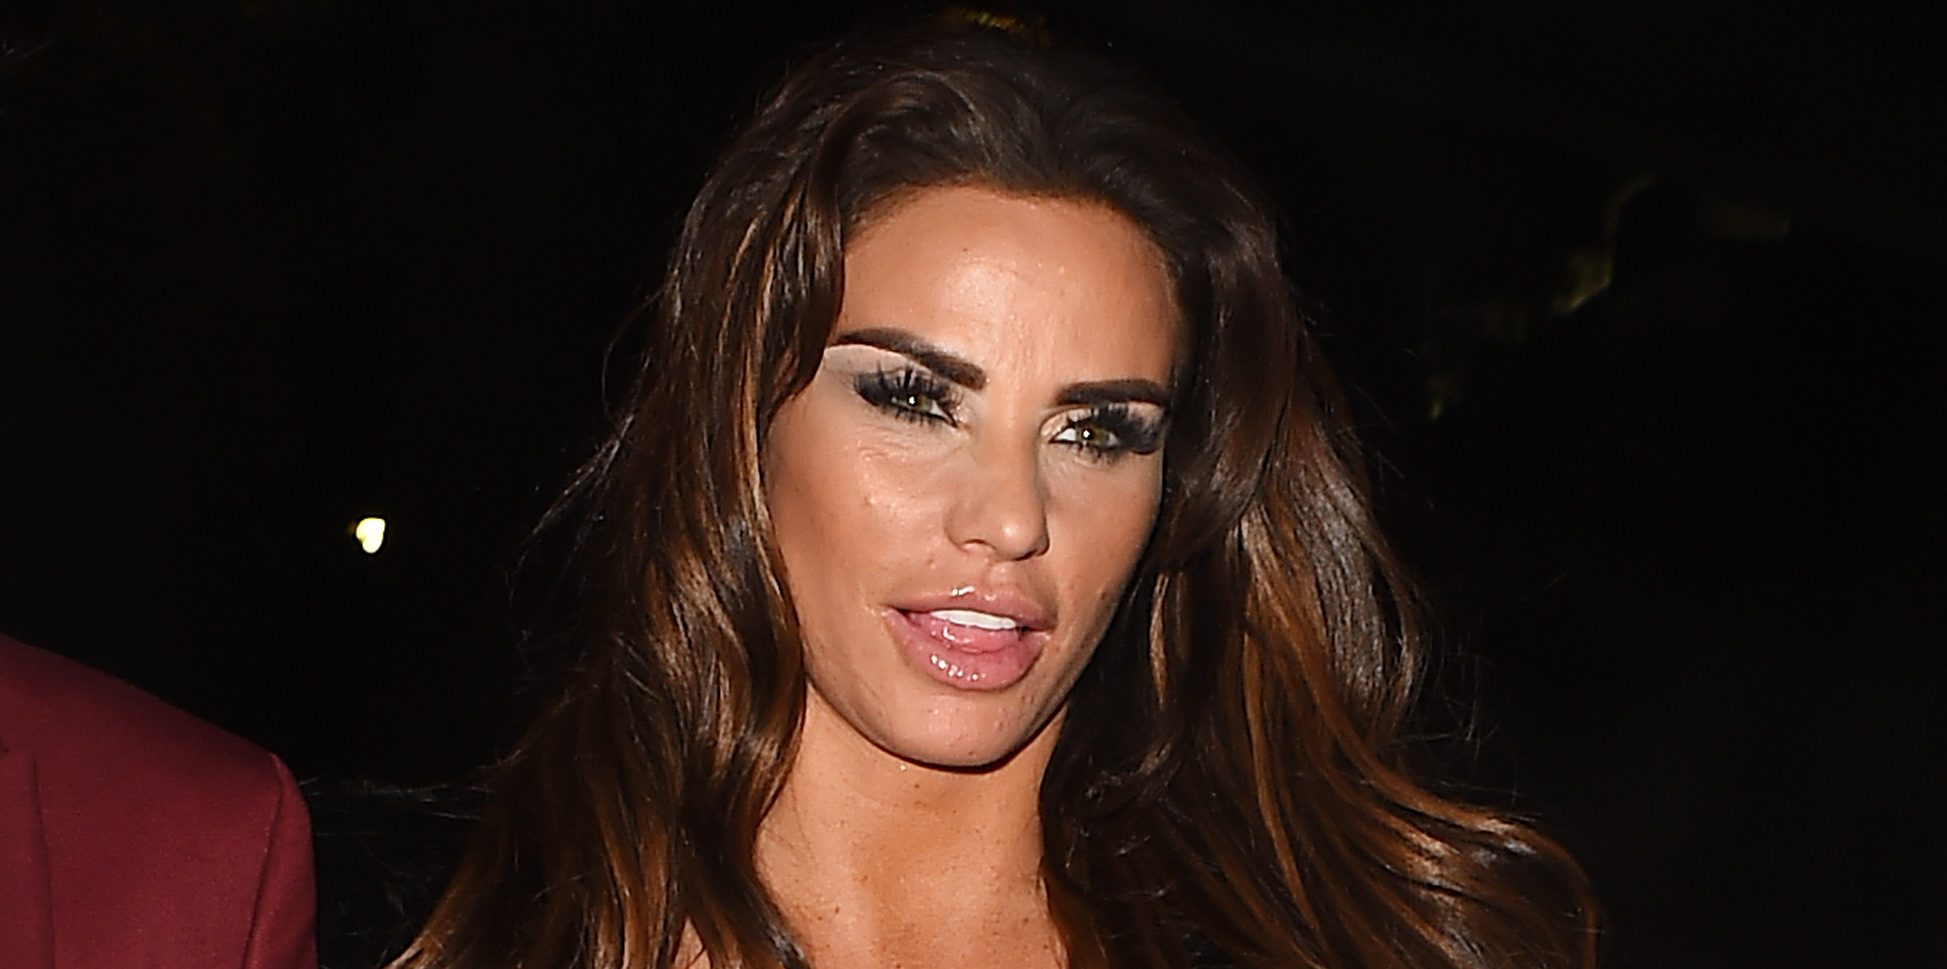 Katie Price 'doing dry January in a bid to drop a dress size'